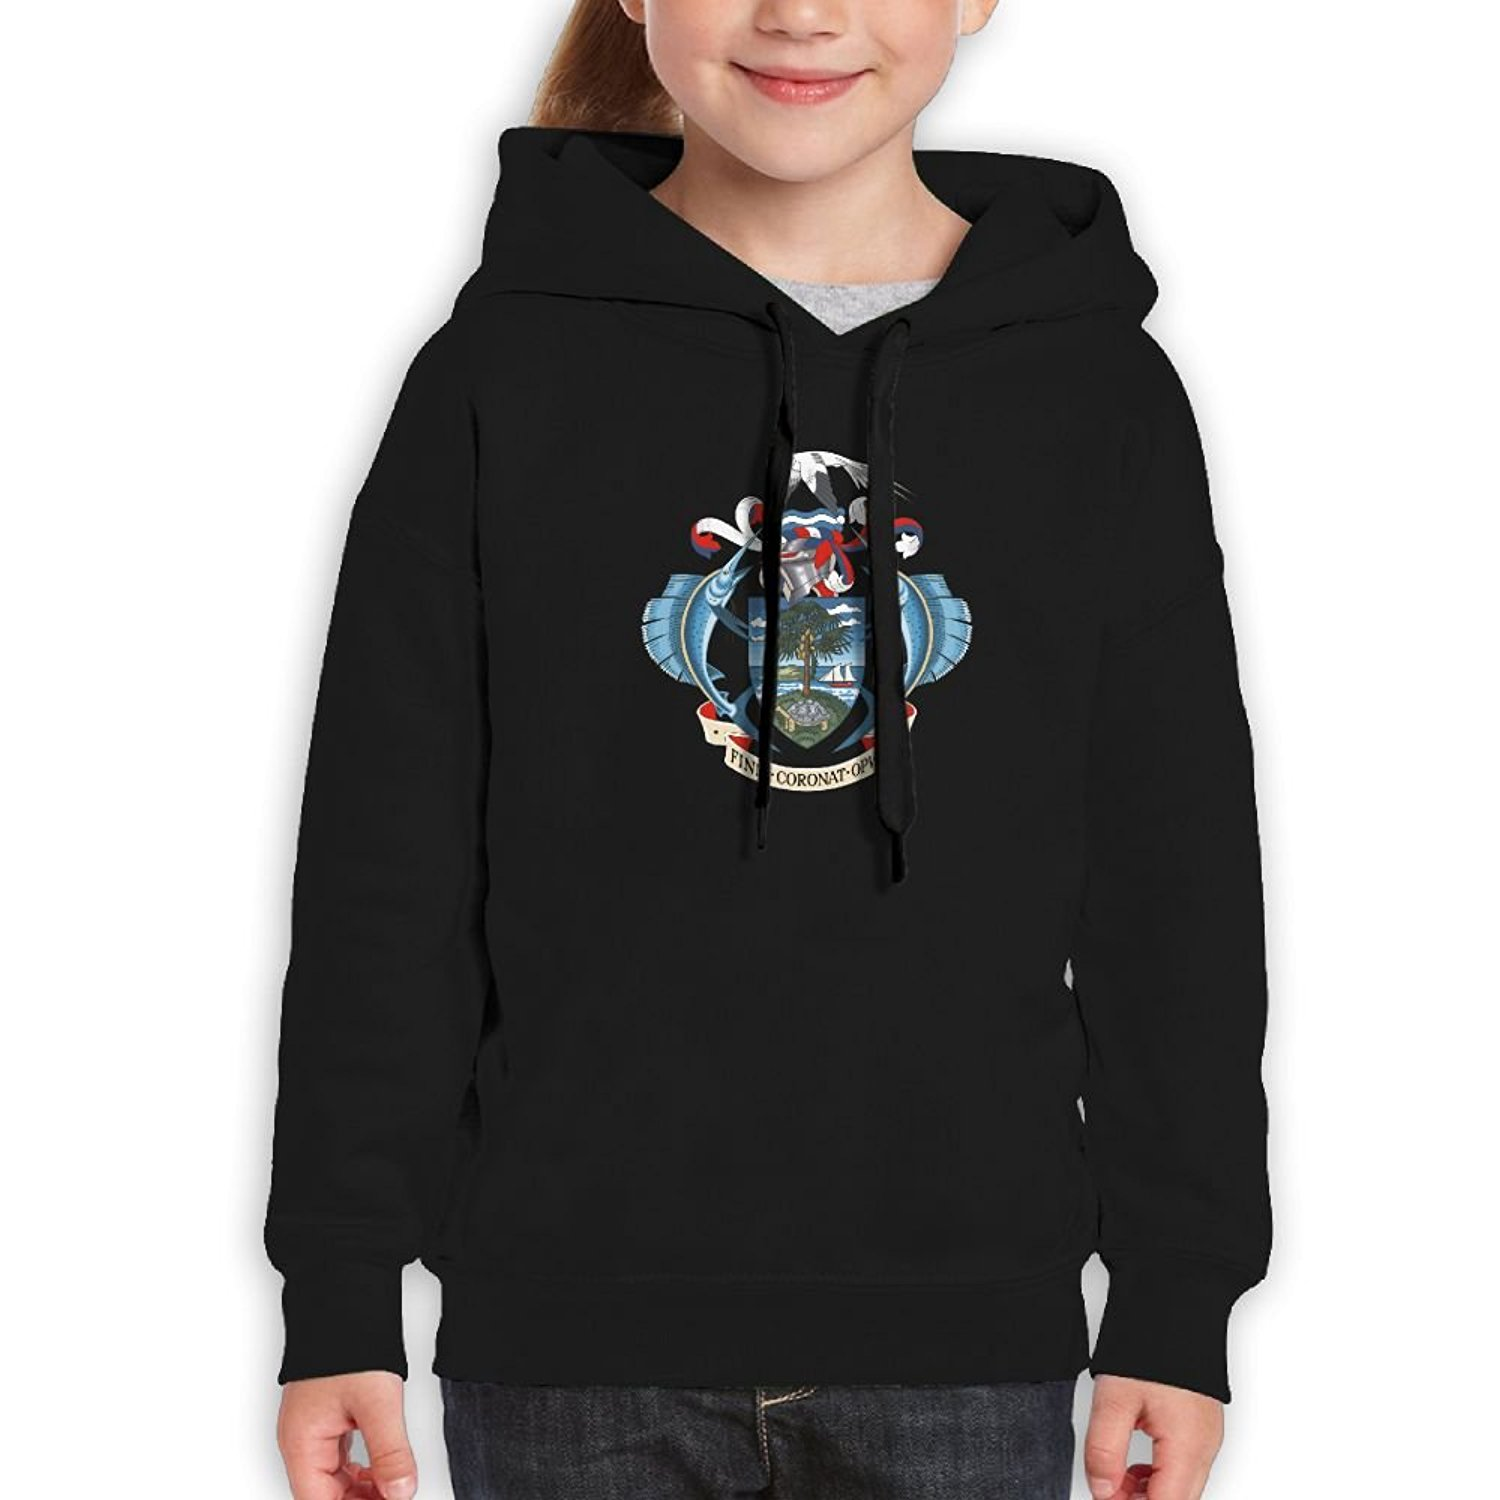 DTMN7 Rabbit Best Graphic Printed Crew Neck Pullover For Youth Spring Autumn Winter